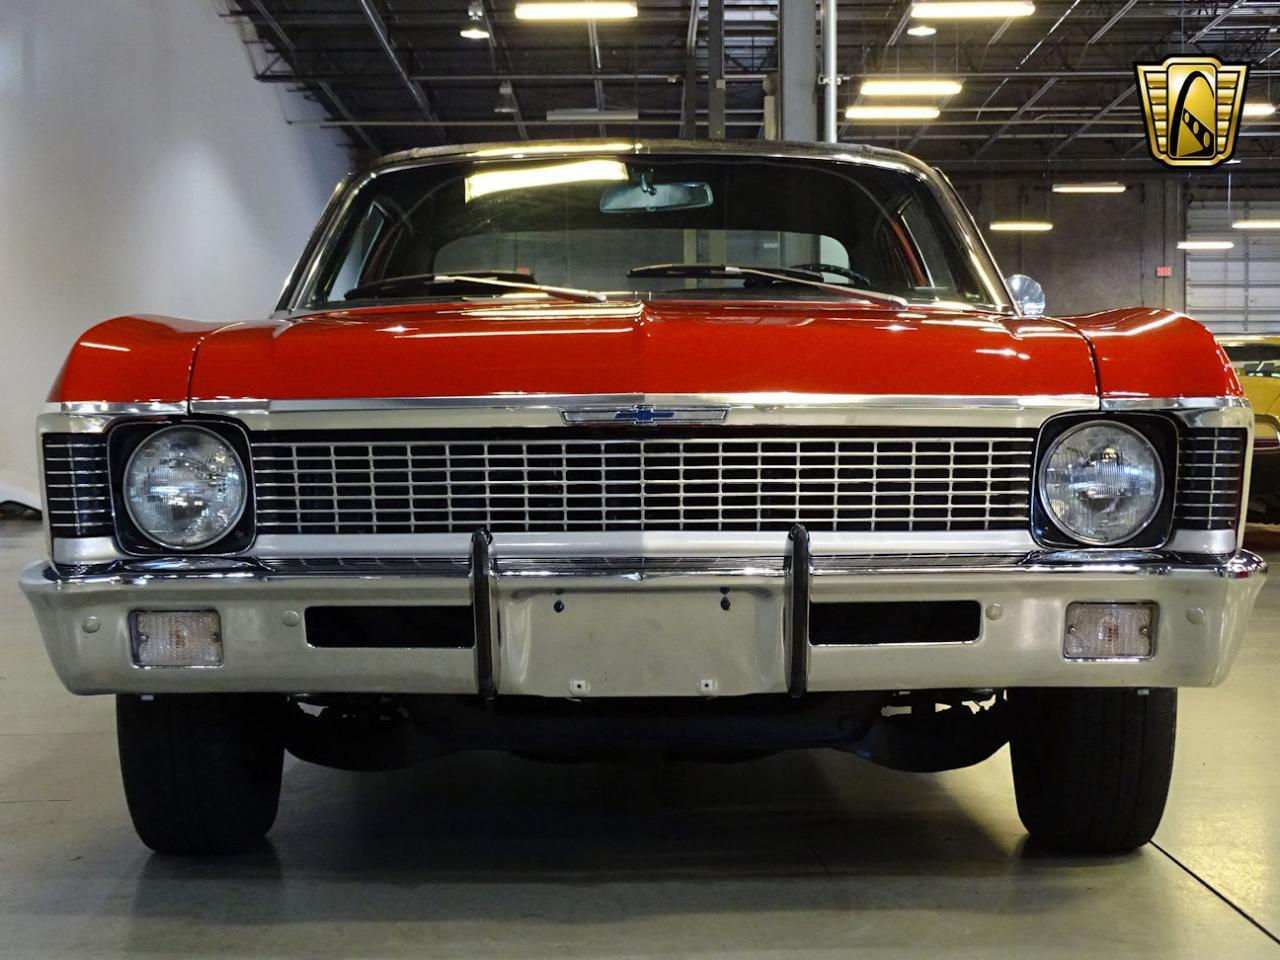 Large Picture of 1970 Chevrolet Nova located in Lake Mary Florida - $26,995.00 Offered by Gateway Classic Cars - Orlando - MEMB